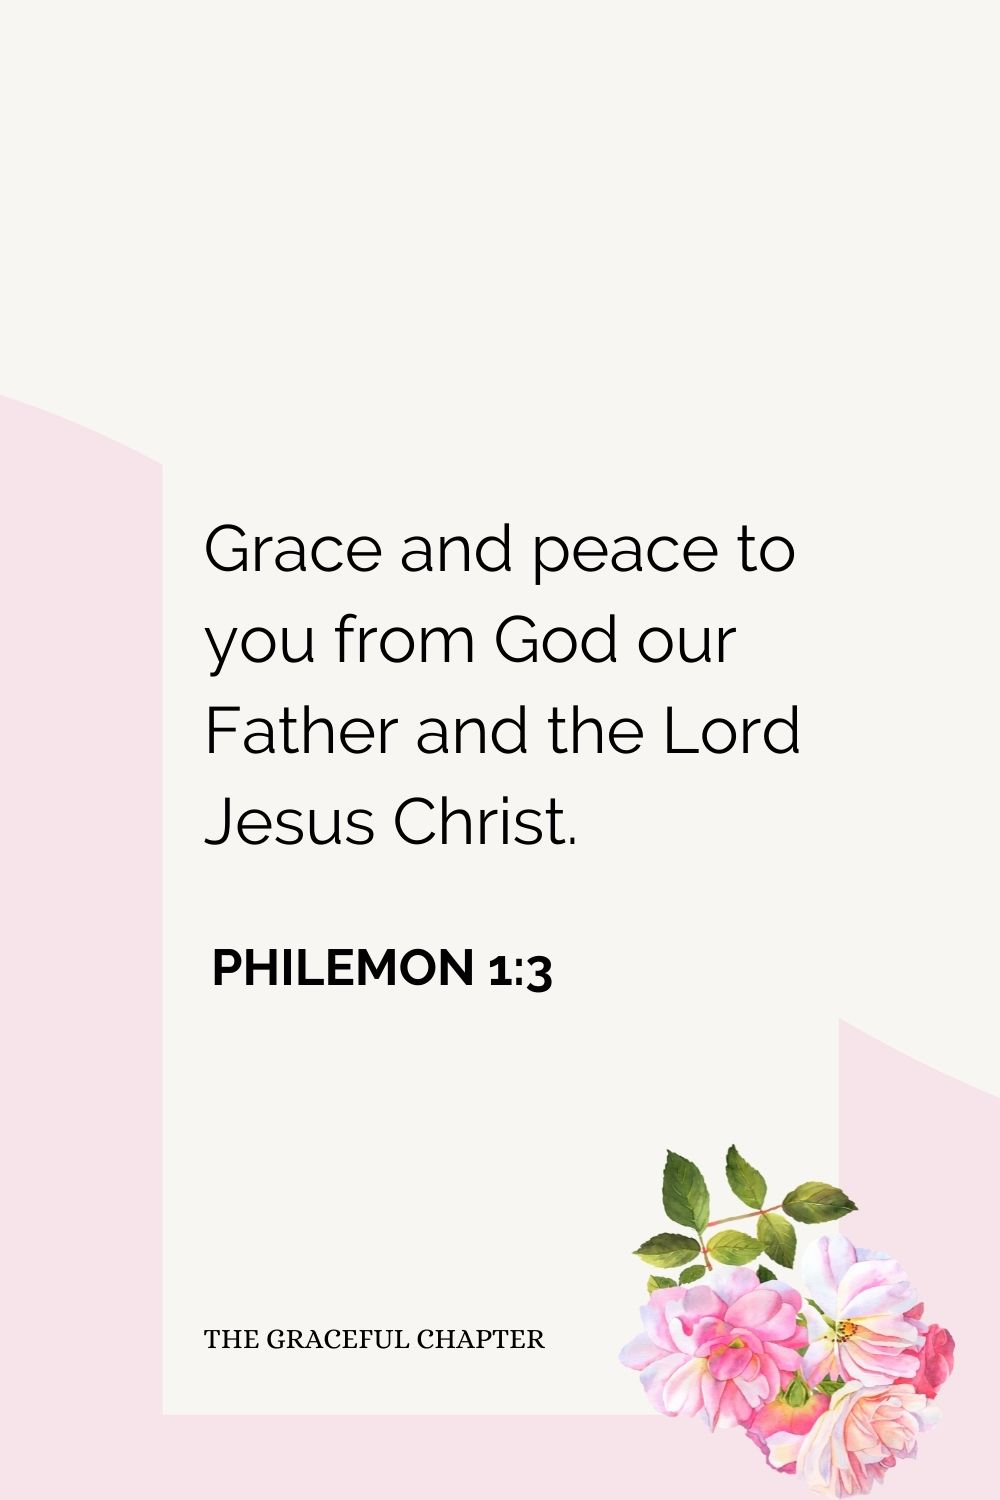 Grace and peace to you from God our Father and the Lord Jesus Christ. Philemon 1:3